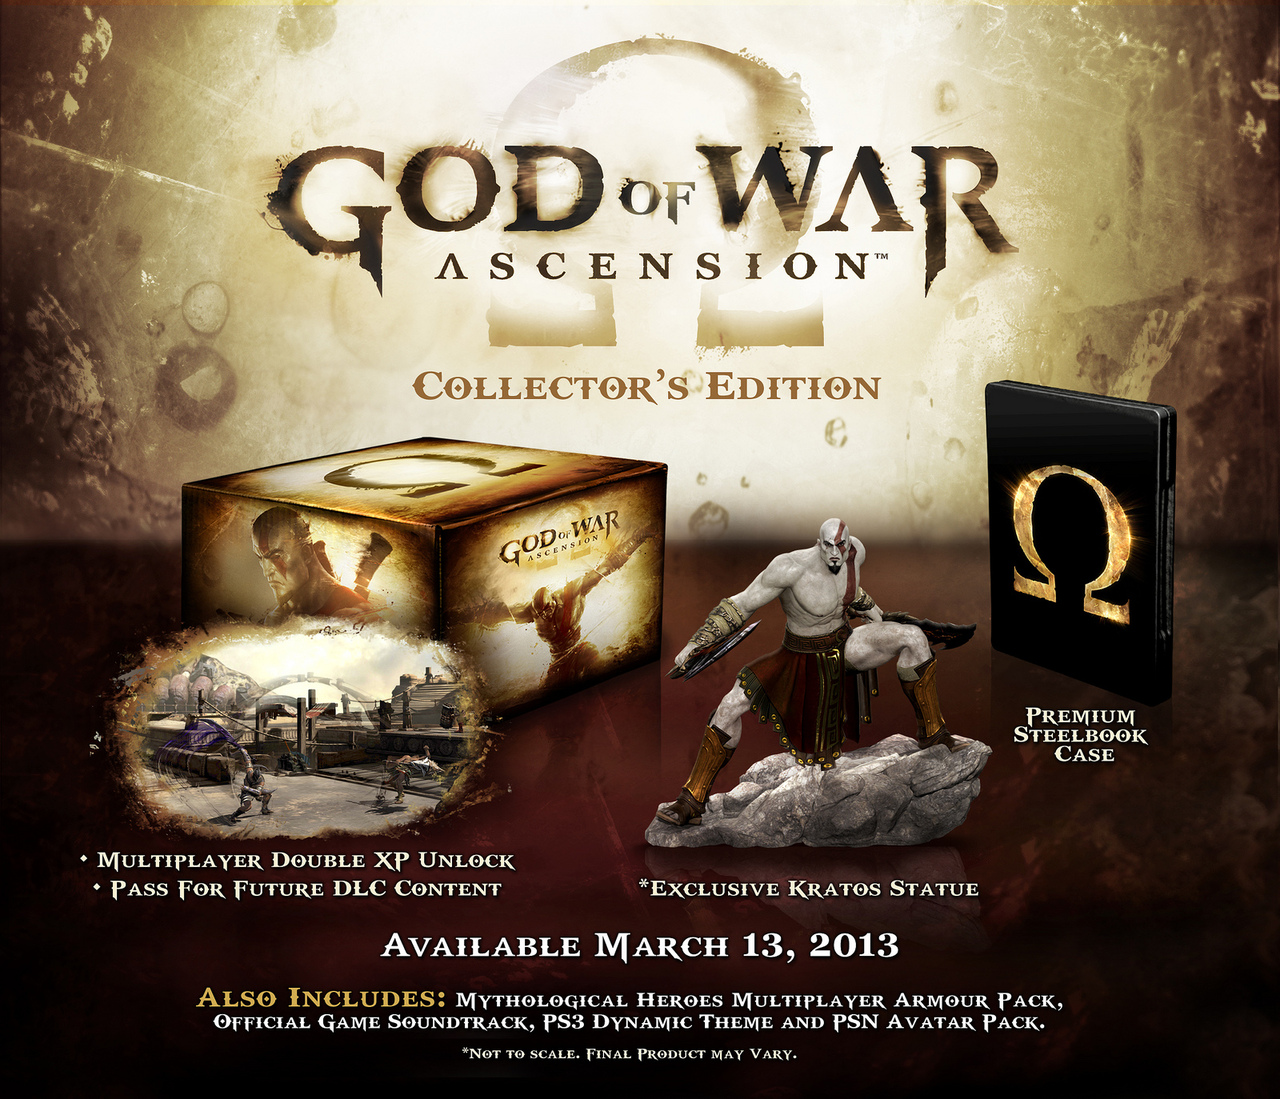 http://image.jeuxvideo.com/imd/g/god_of_war__1_.jpg